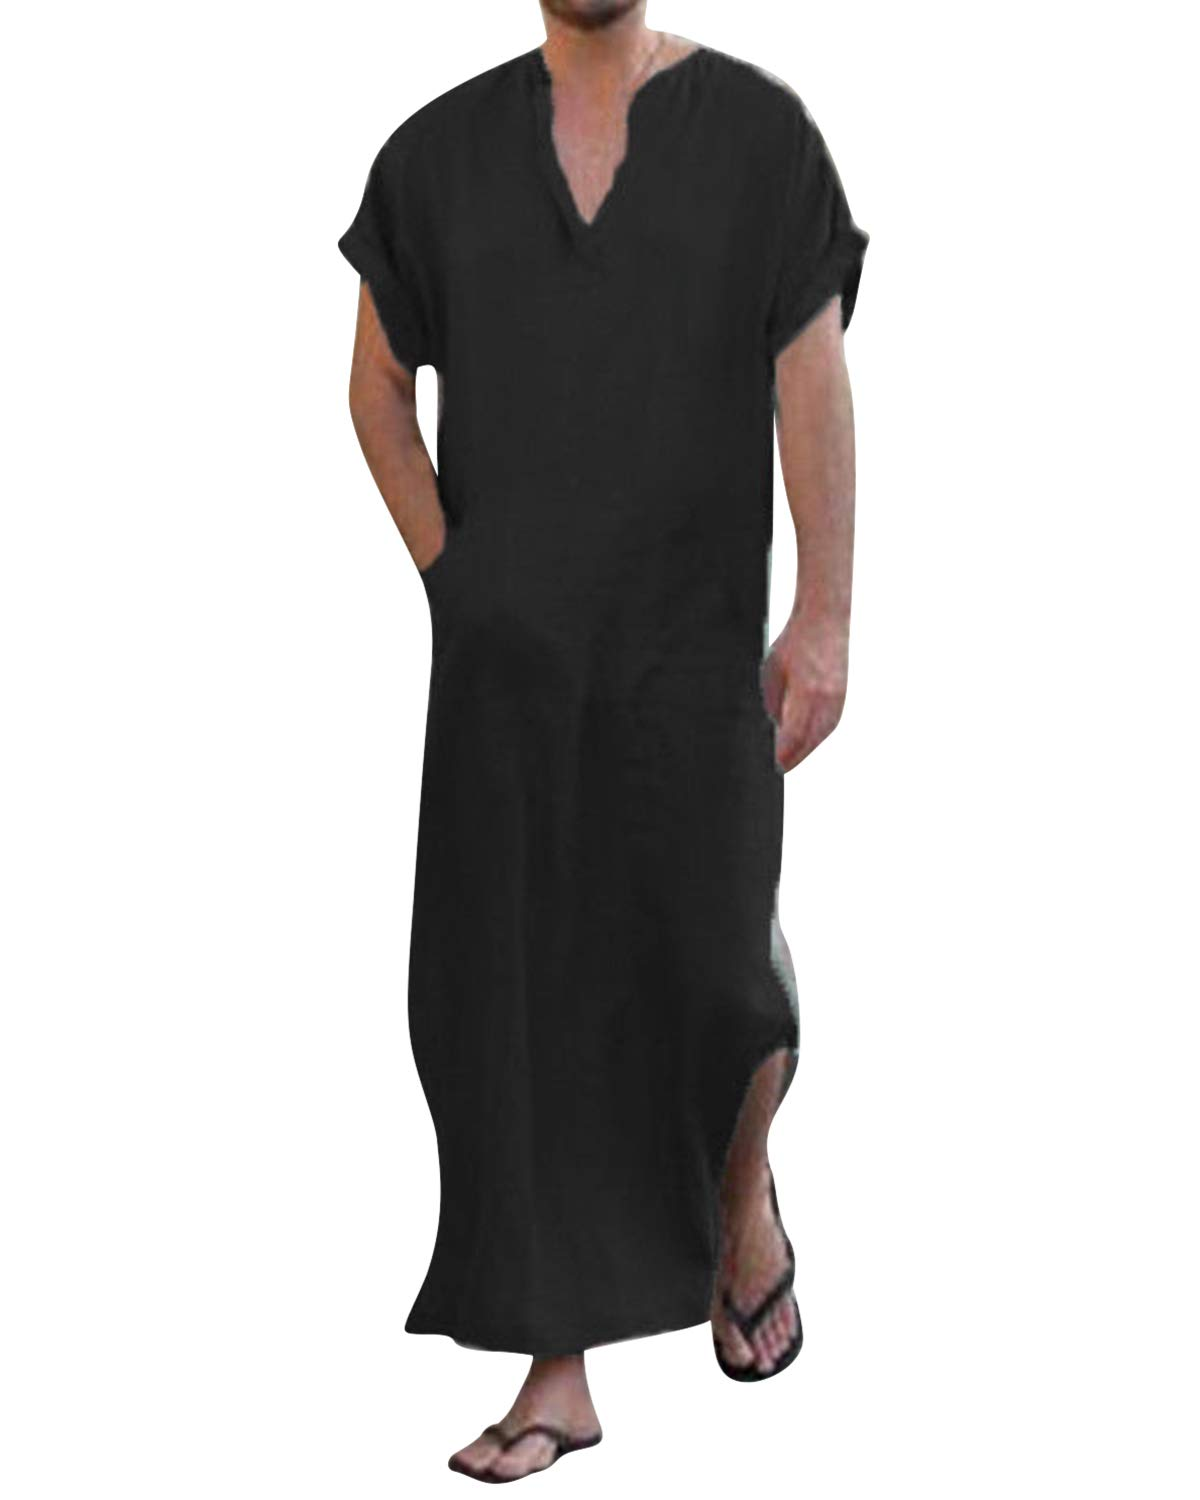 Jacansi Men's Loose Kaftan Cotton Side Split Dubai Indian Arabic Ethnic Robes Black M